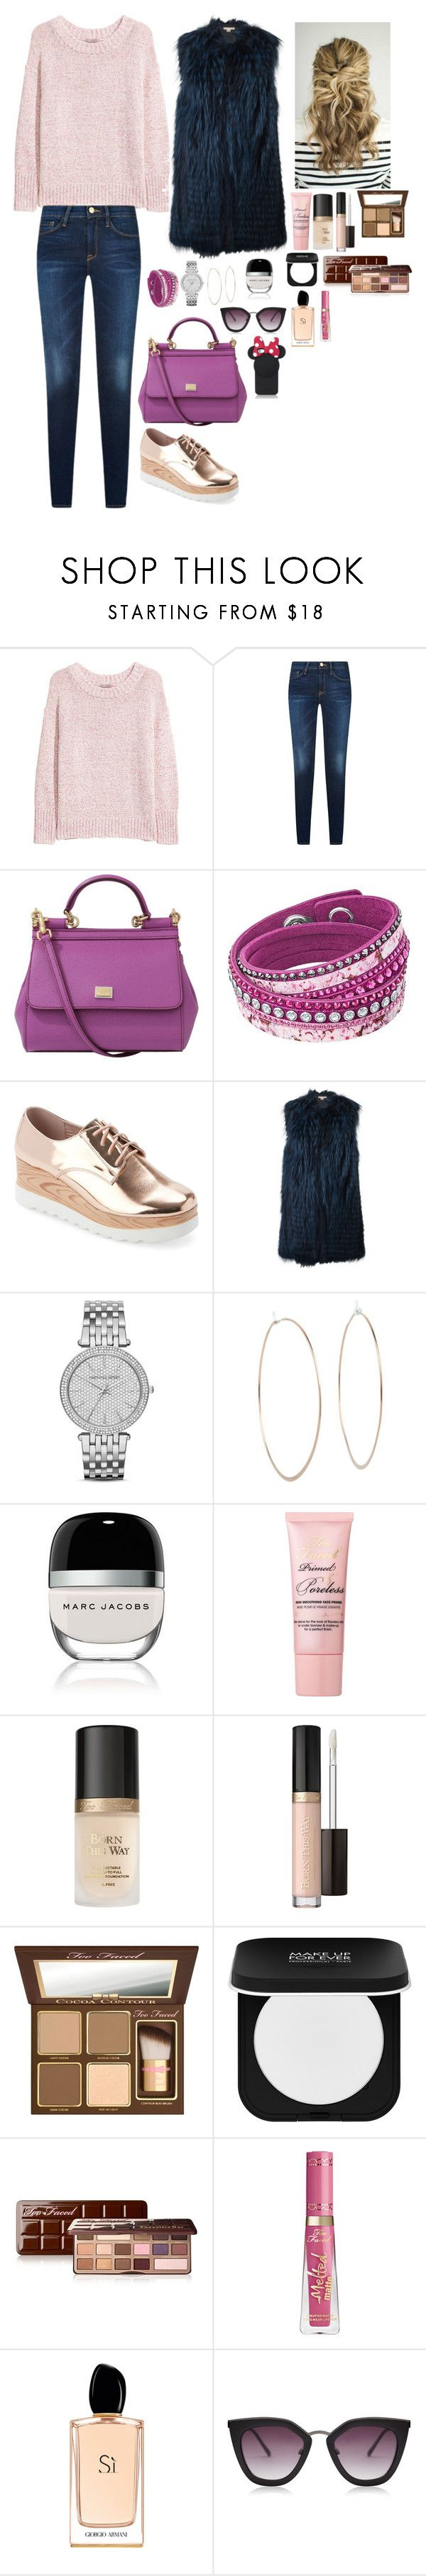 """Untitled #2011"" by azra-99 on Polyvore featuring H&M, Dolce&Gabbana, Swarovski, Wanted, Michael Kors, Marc Jacobs, Too Faced Cosmetics, MAKE UP FOR EVER, Giorgio Armani and Kate Spade"